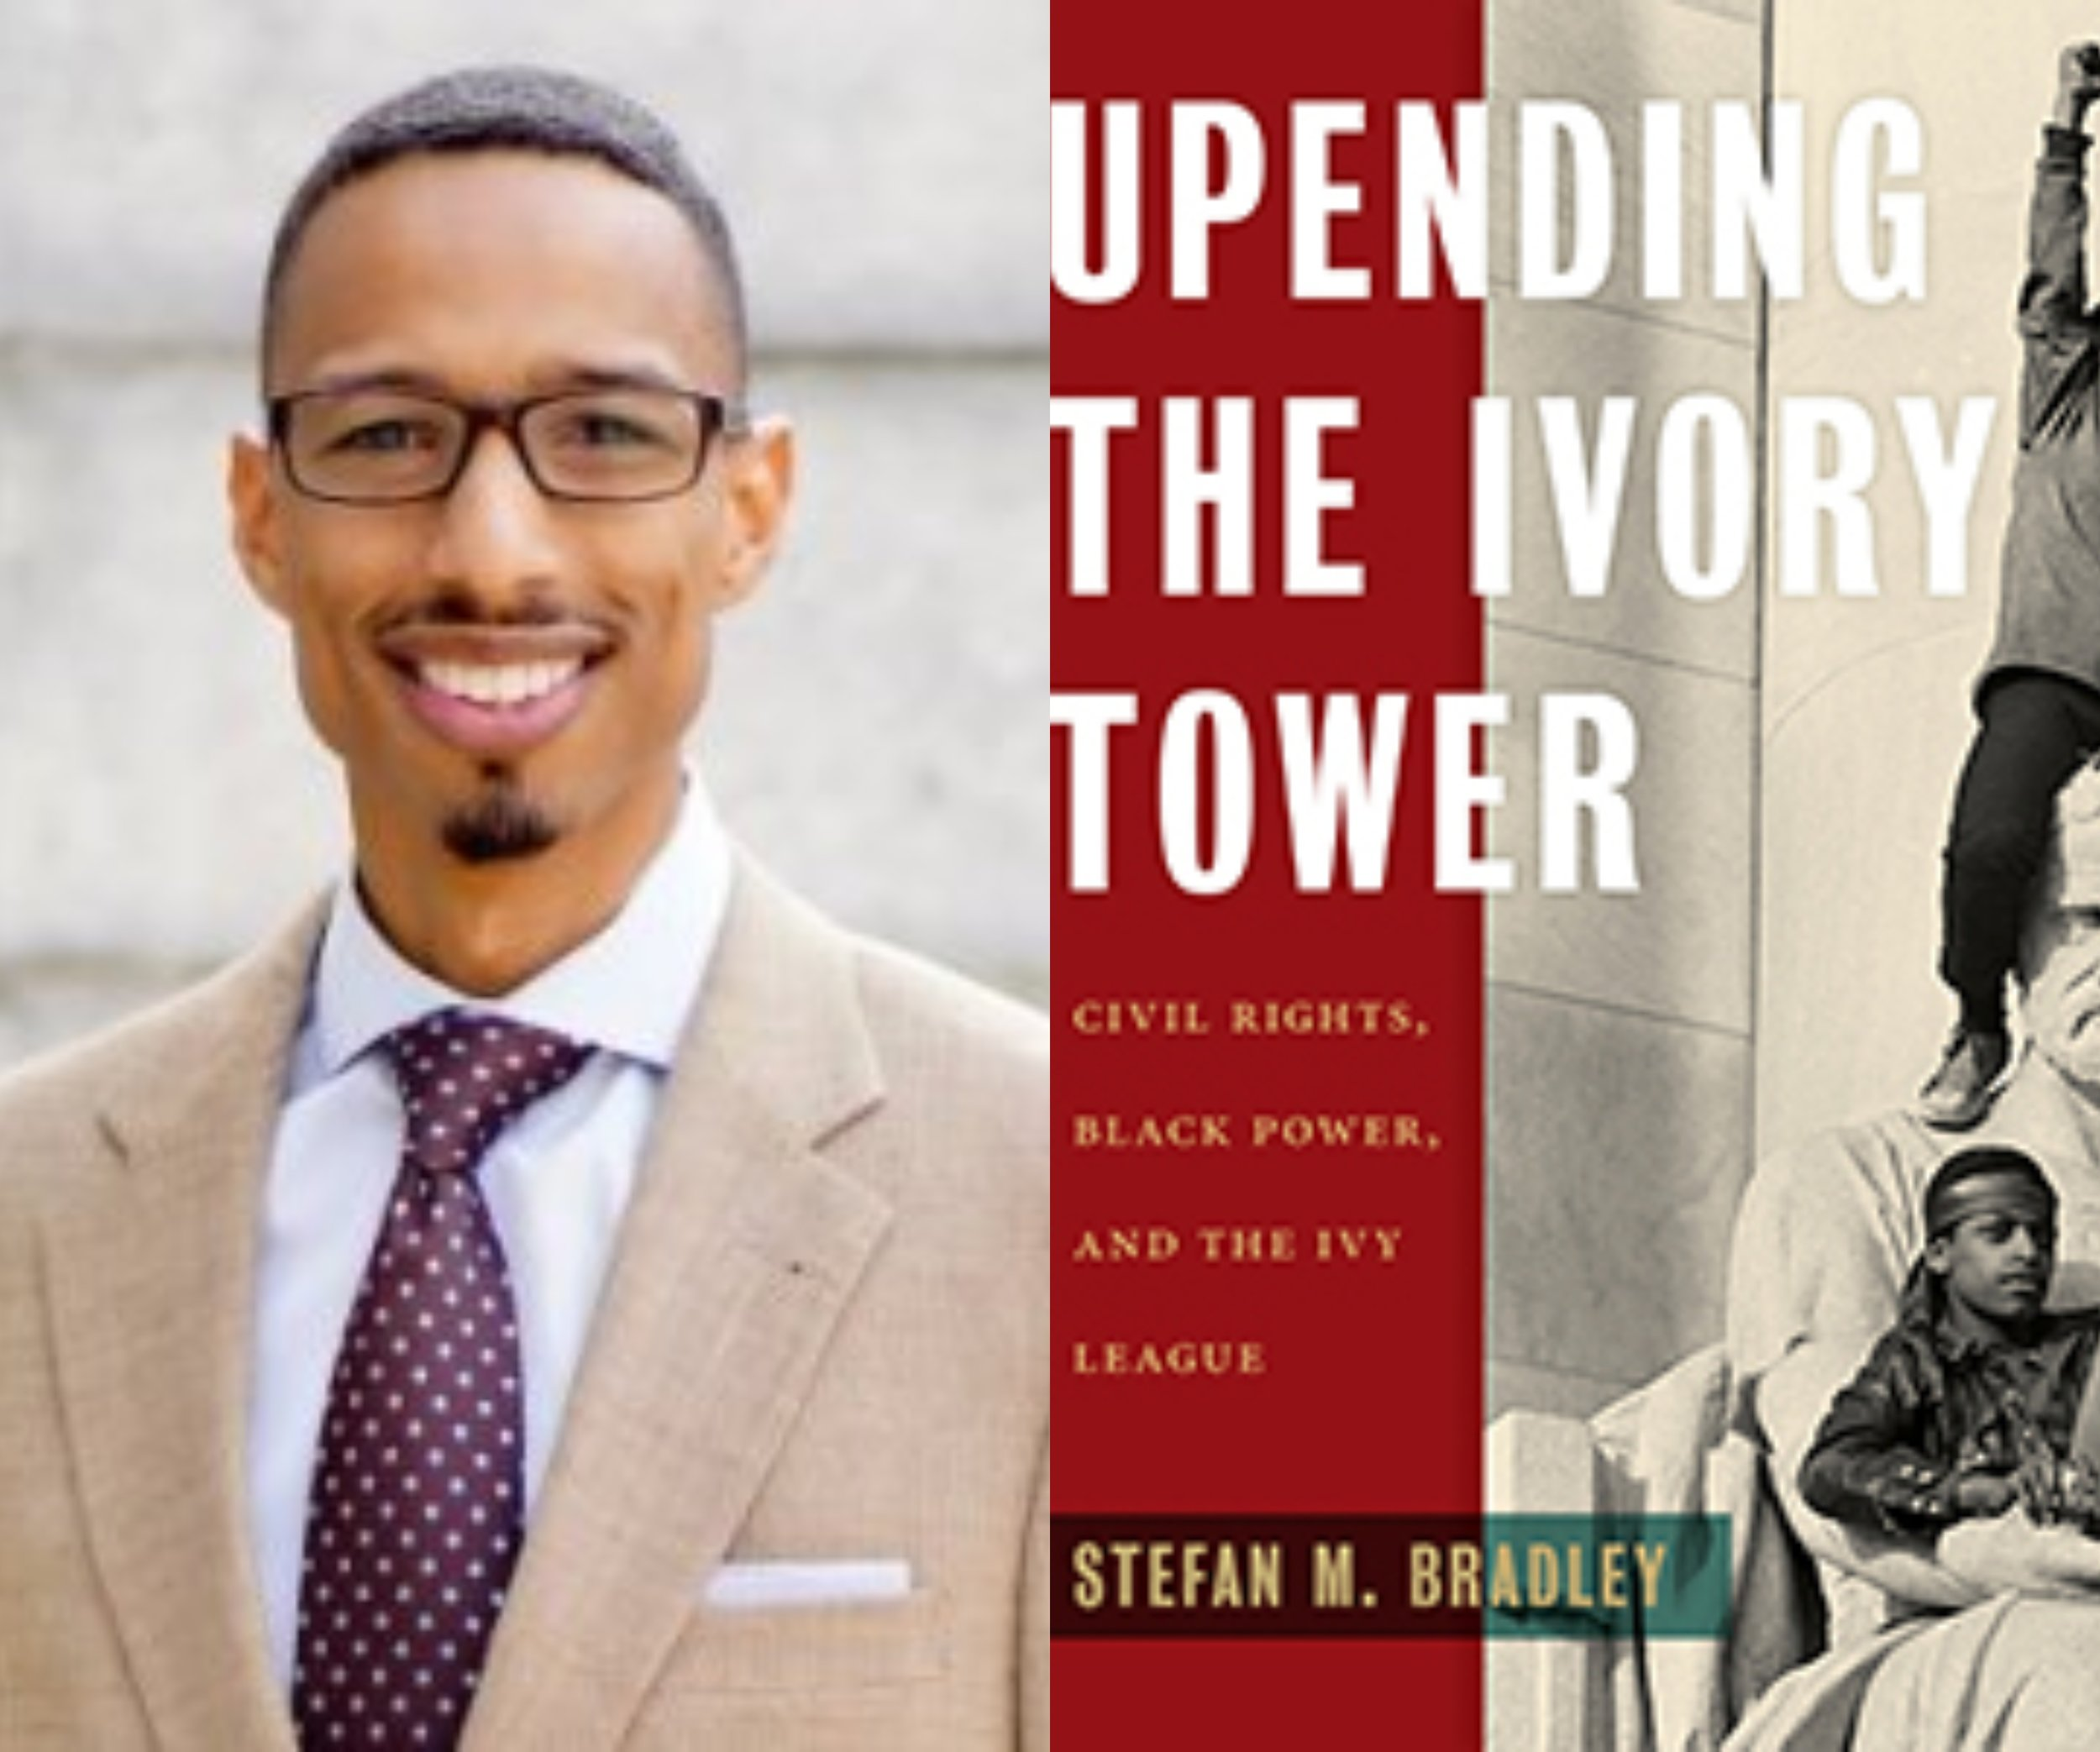 FREE SPEECH 35: How Did American Universities Become Great? (Hint: Black Student Activists), with Stefan Bradley - With Professor Stefan Bradley, Loyola Marymount University, Los AngelesREAD MORE